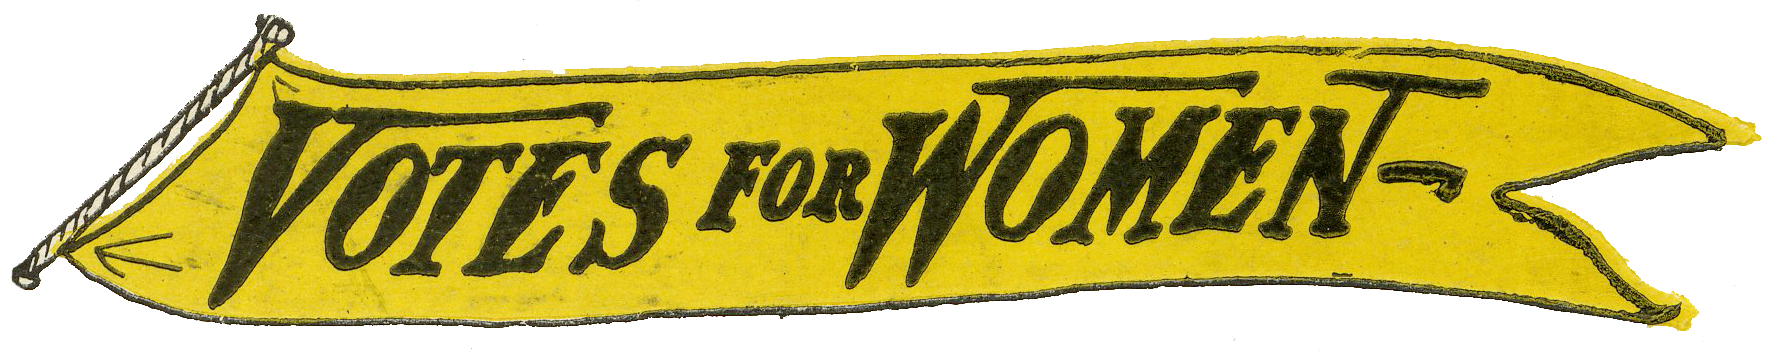 Yellow Votes for Women Banner